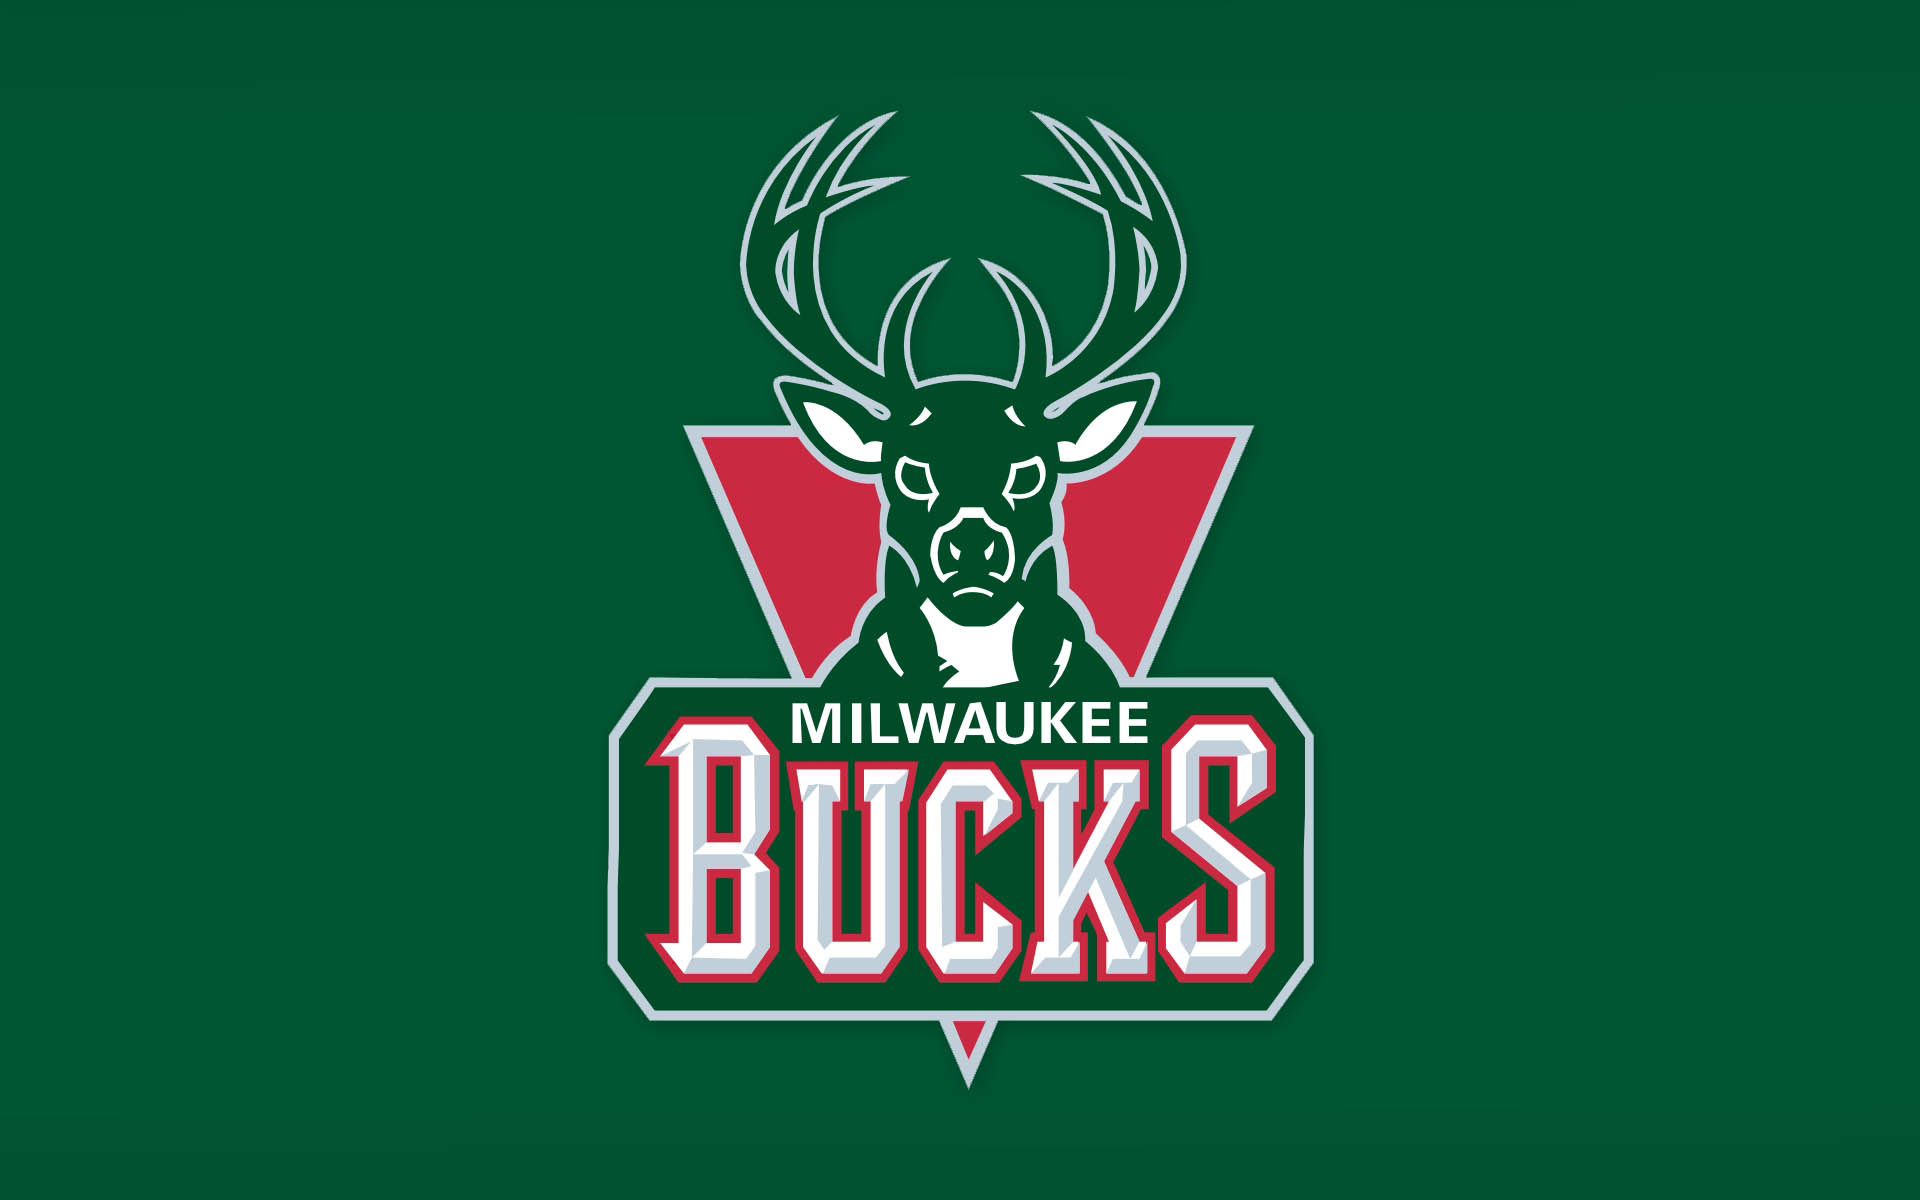 Dimensions Of A Wallpaper For Iphone X Milwaukee Bucks Wallpapers Hd Full Hd Pictures